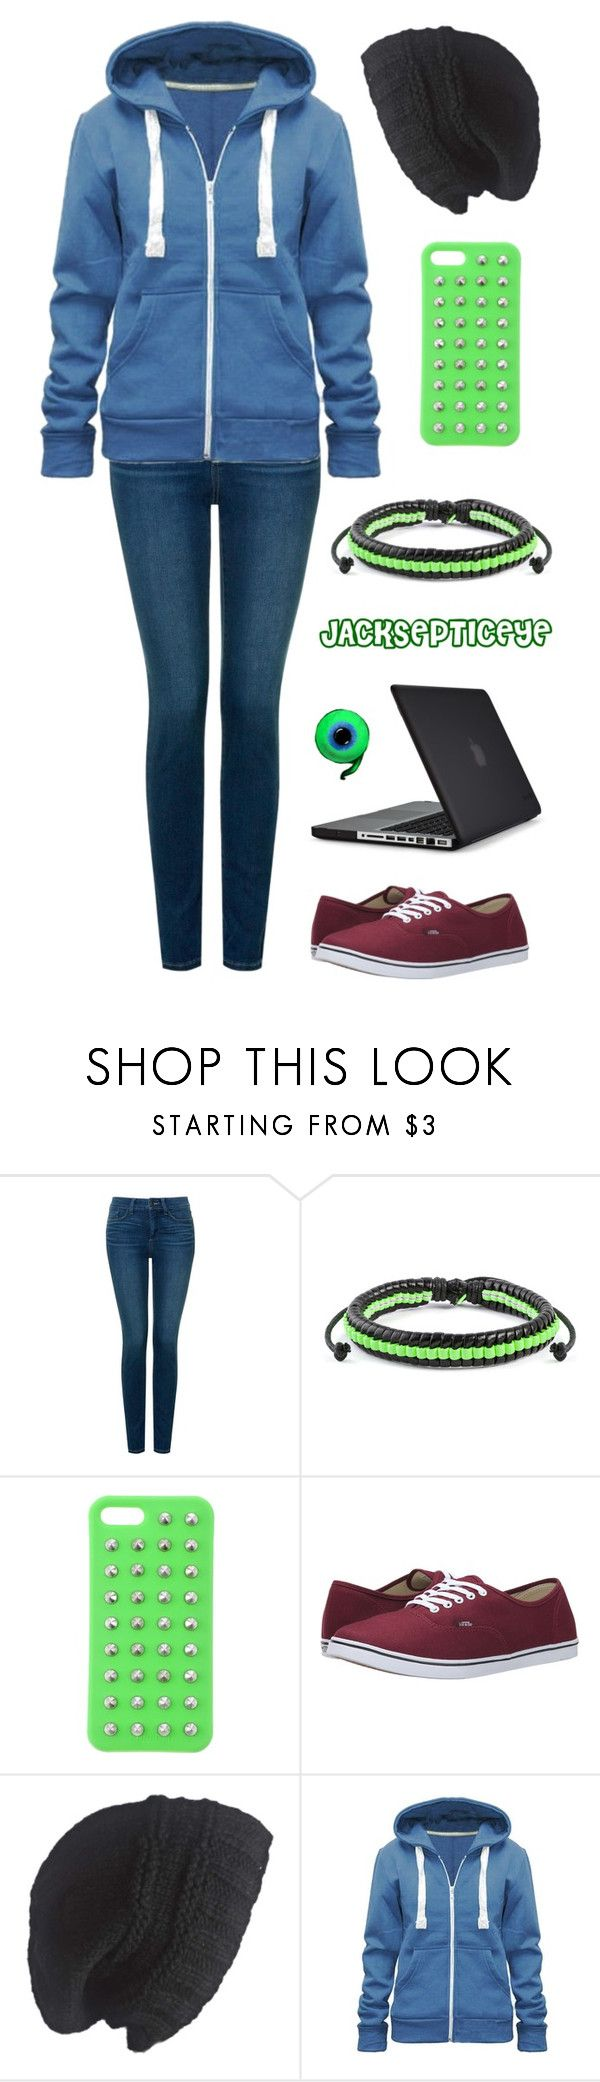 """Jacksepticeye Outfit"" by oagraci ❤ liked on Polyvore featuring NYDJ, West Coast Jewelry, 4WE, Vans, Laundromat and Speck"